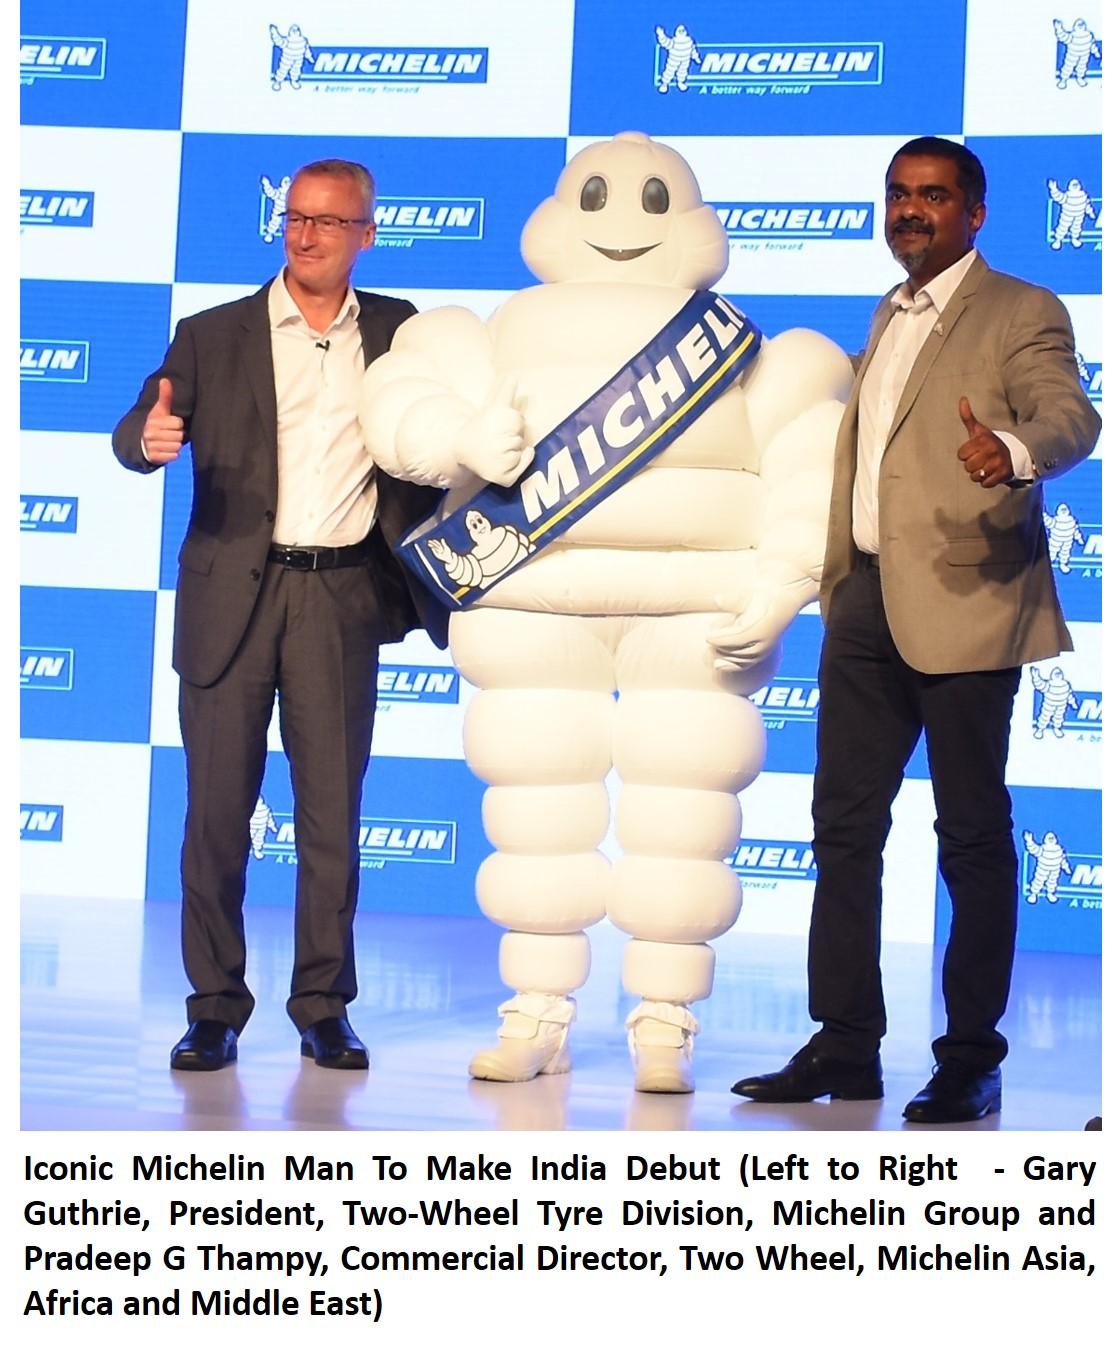 Michelin Man To Make India Debut